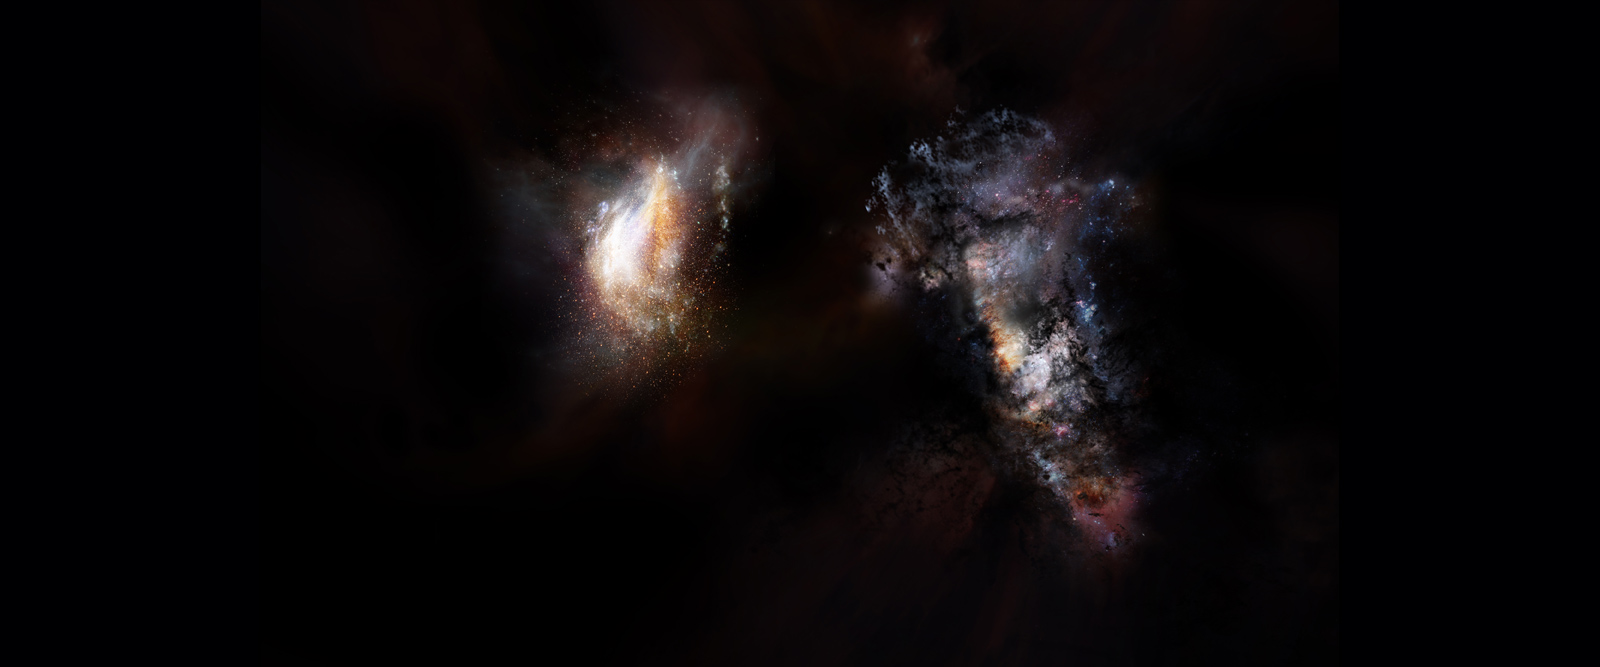 Massive galaxies found in early Universe